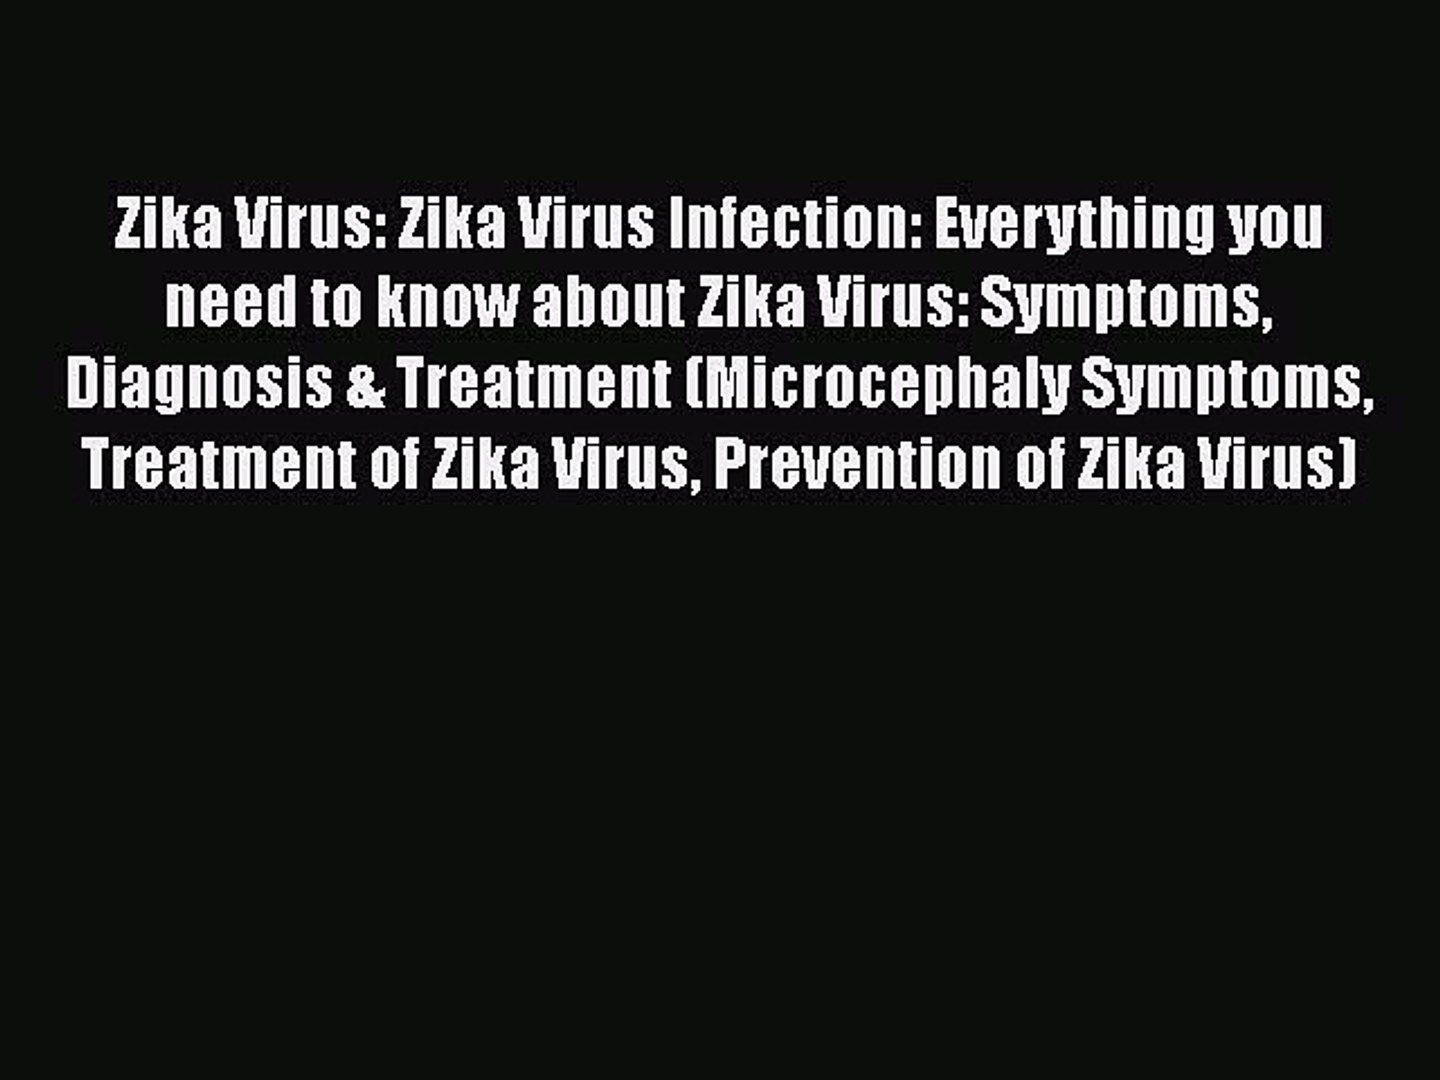 Download Zika Virus: Zika Virus Infection: Everything you need to know about Zika Virus: Symptoms